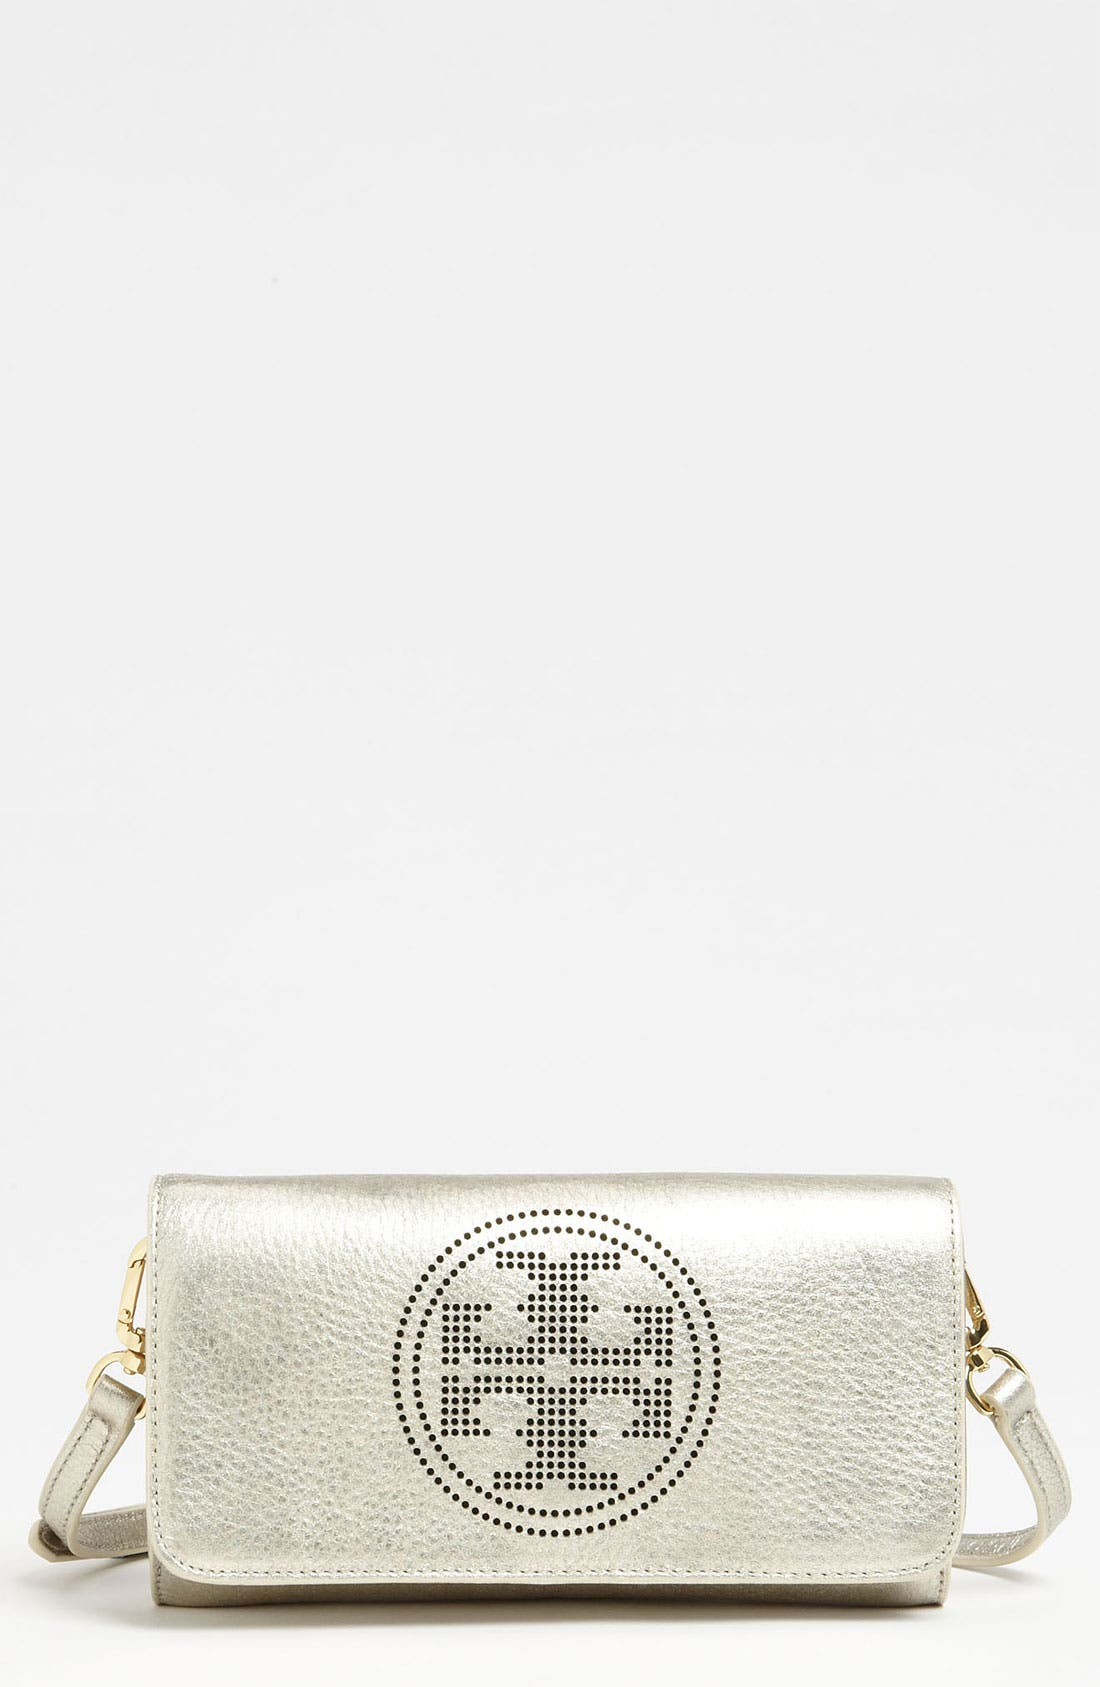 Alternate Image 1 Selected - Tory Burch 'Small' Perforated Logo Clutch